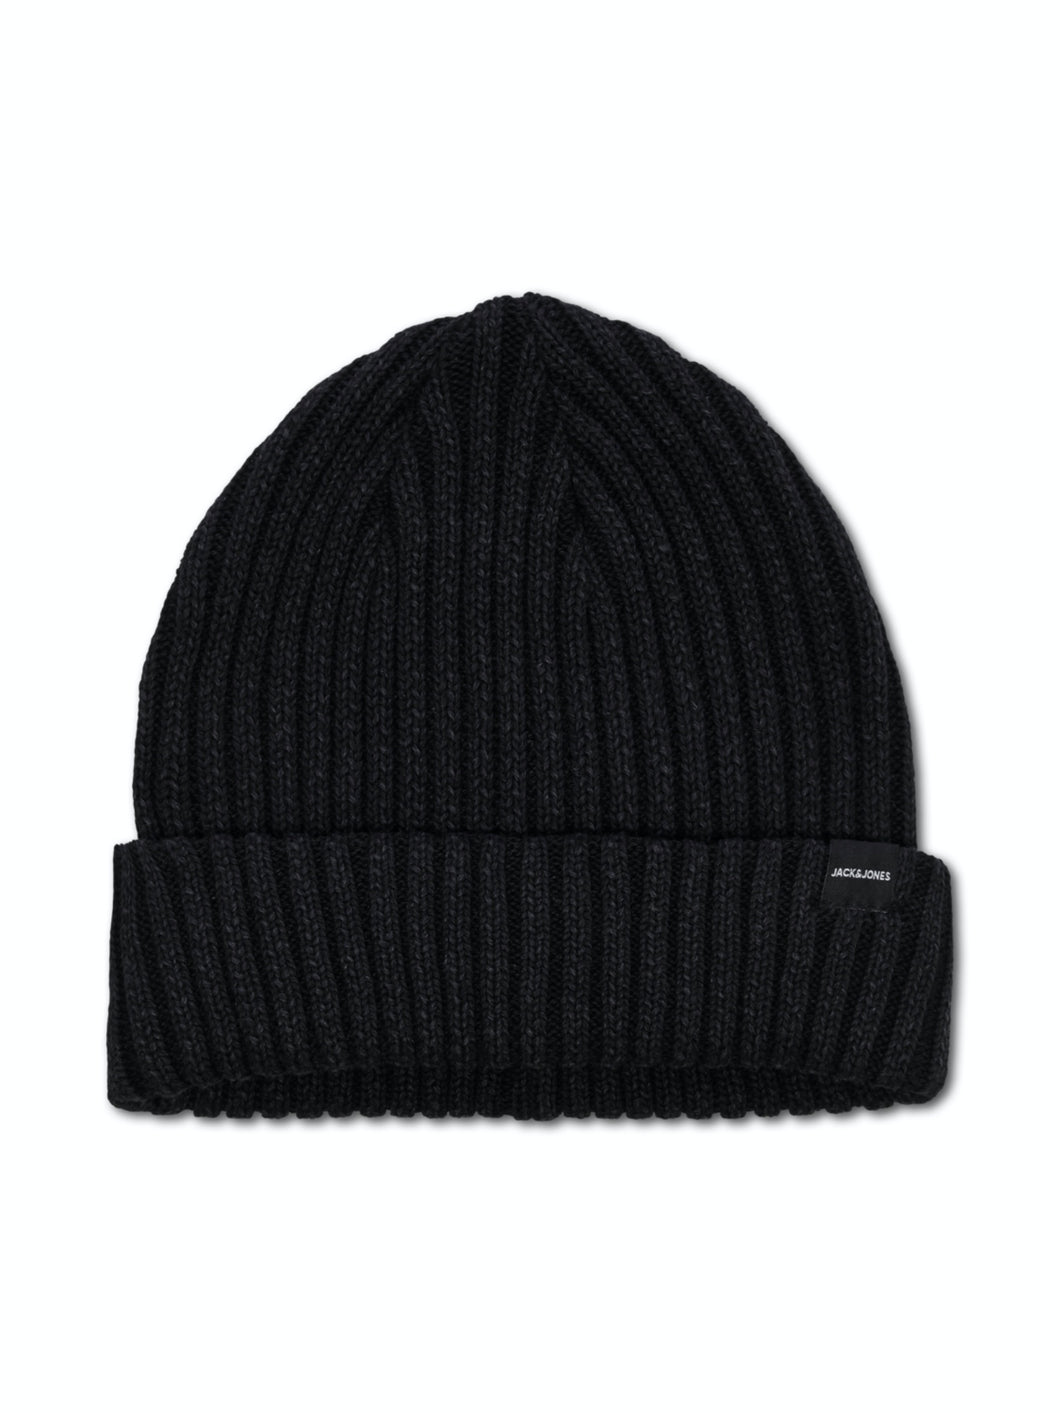 Denny Knit Beanie - Black / One Size - MÖSSA 12175923,